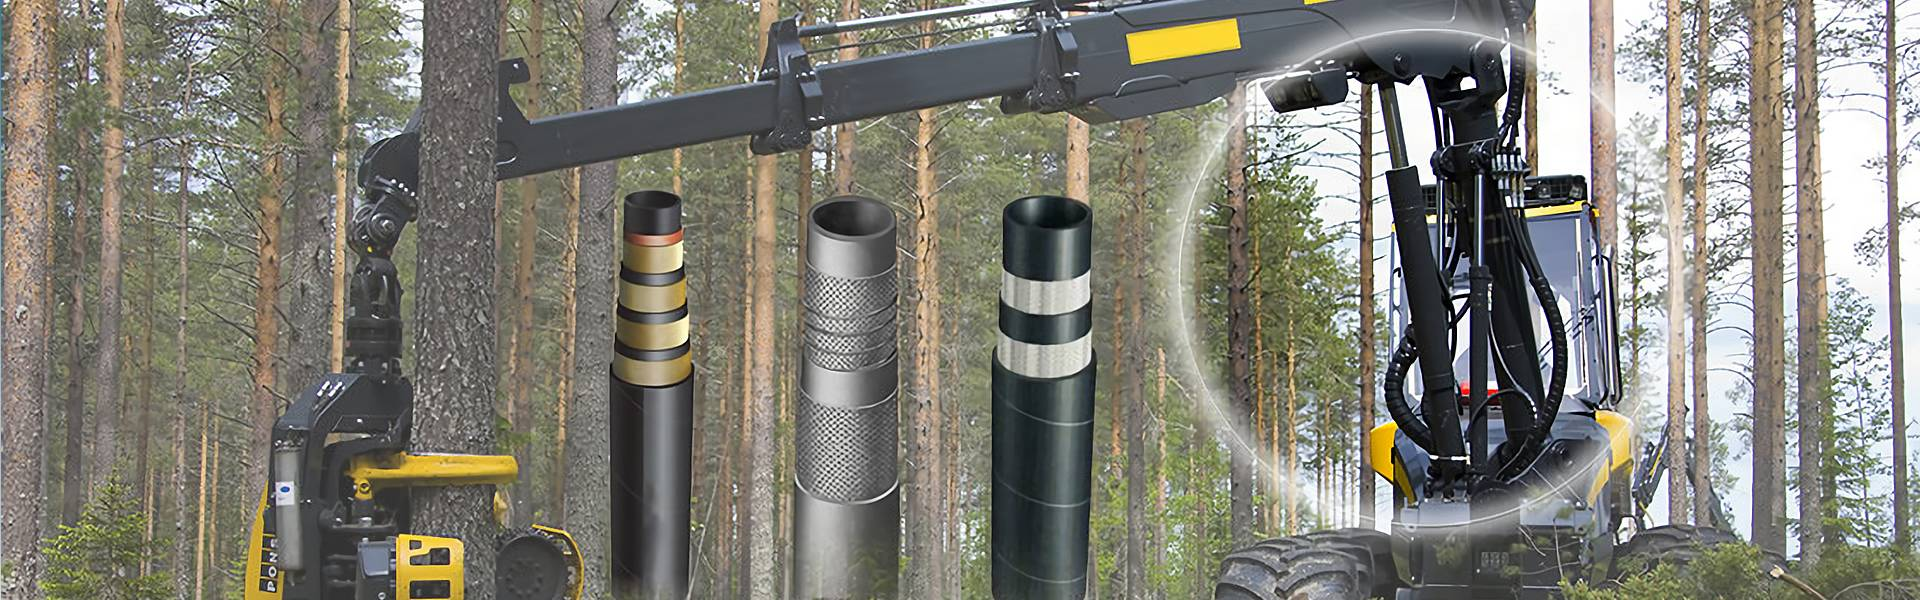 Abrasion-resistance and high impulse fatigue hydraulic hose used in forestry machinery